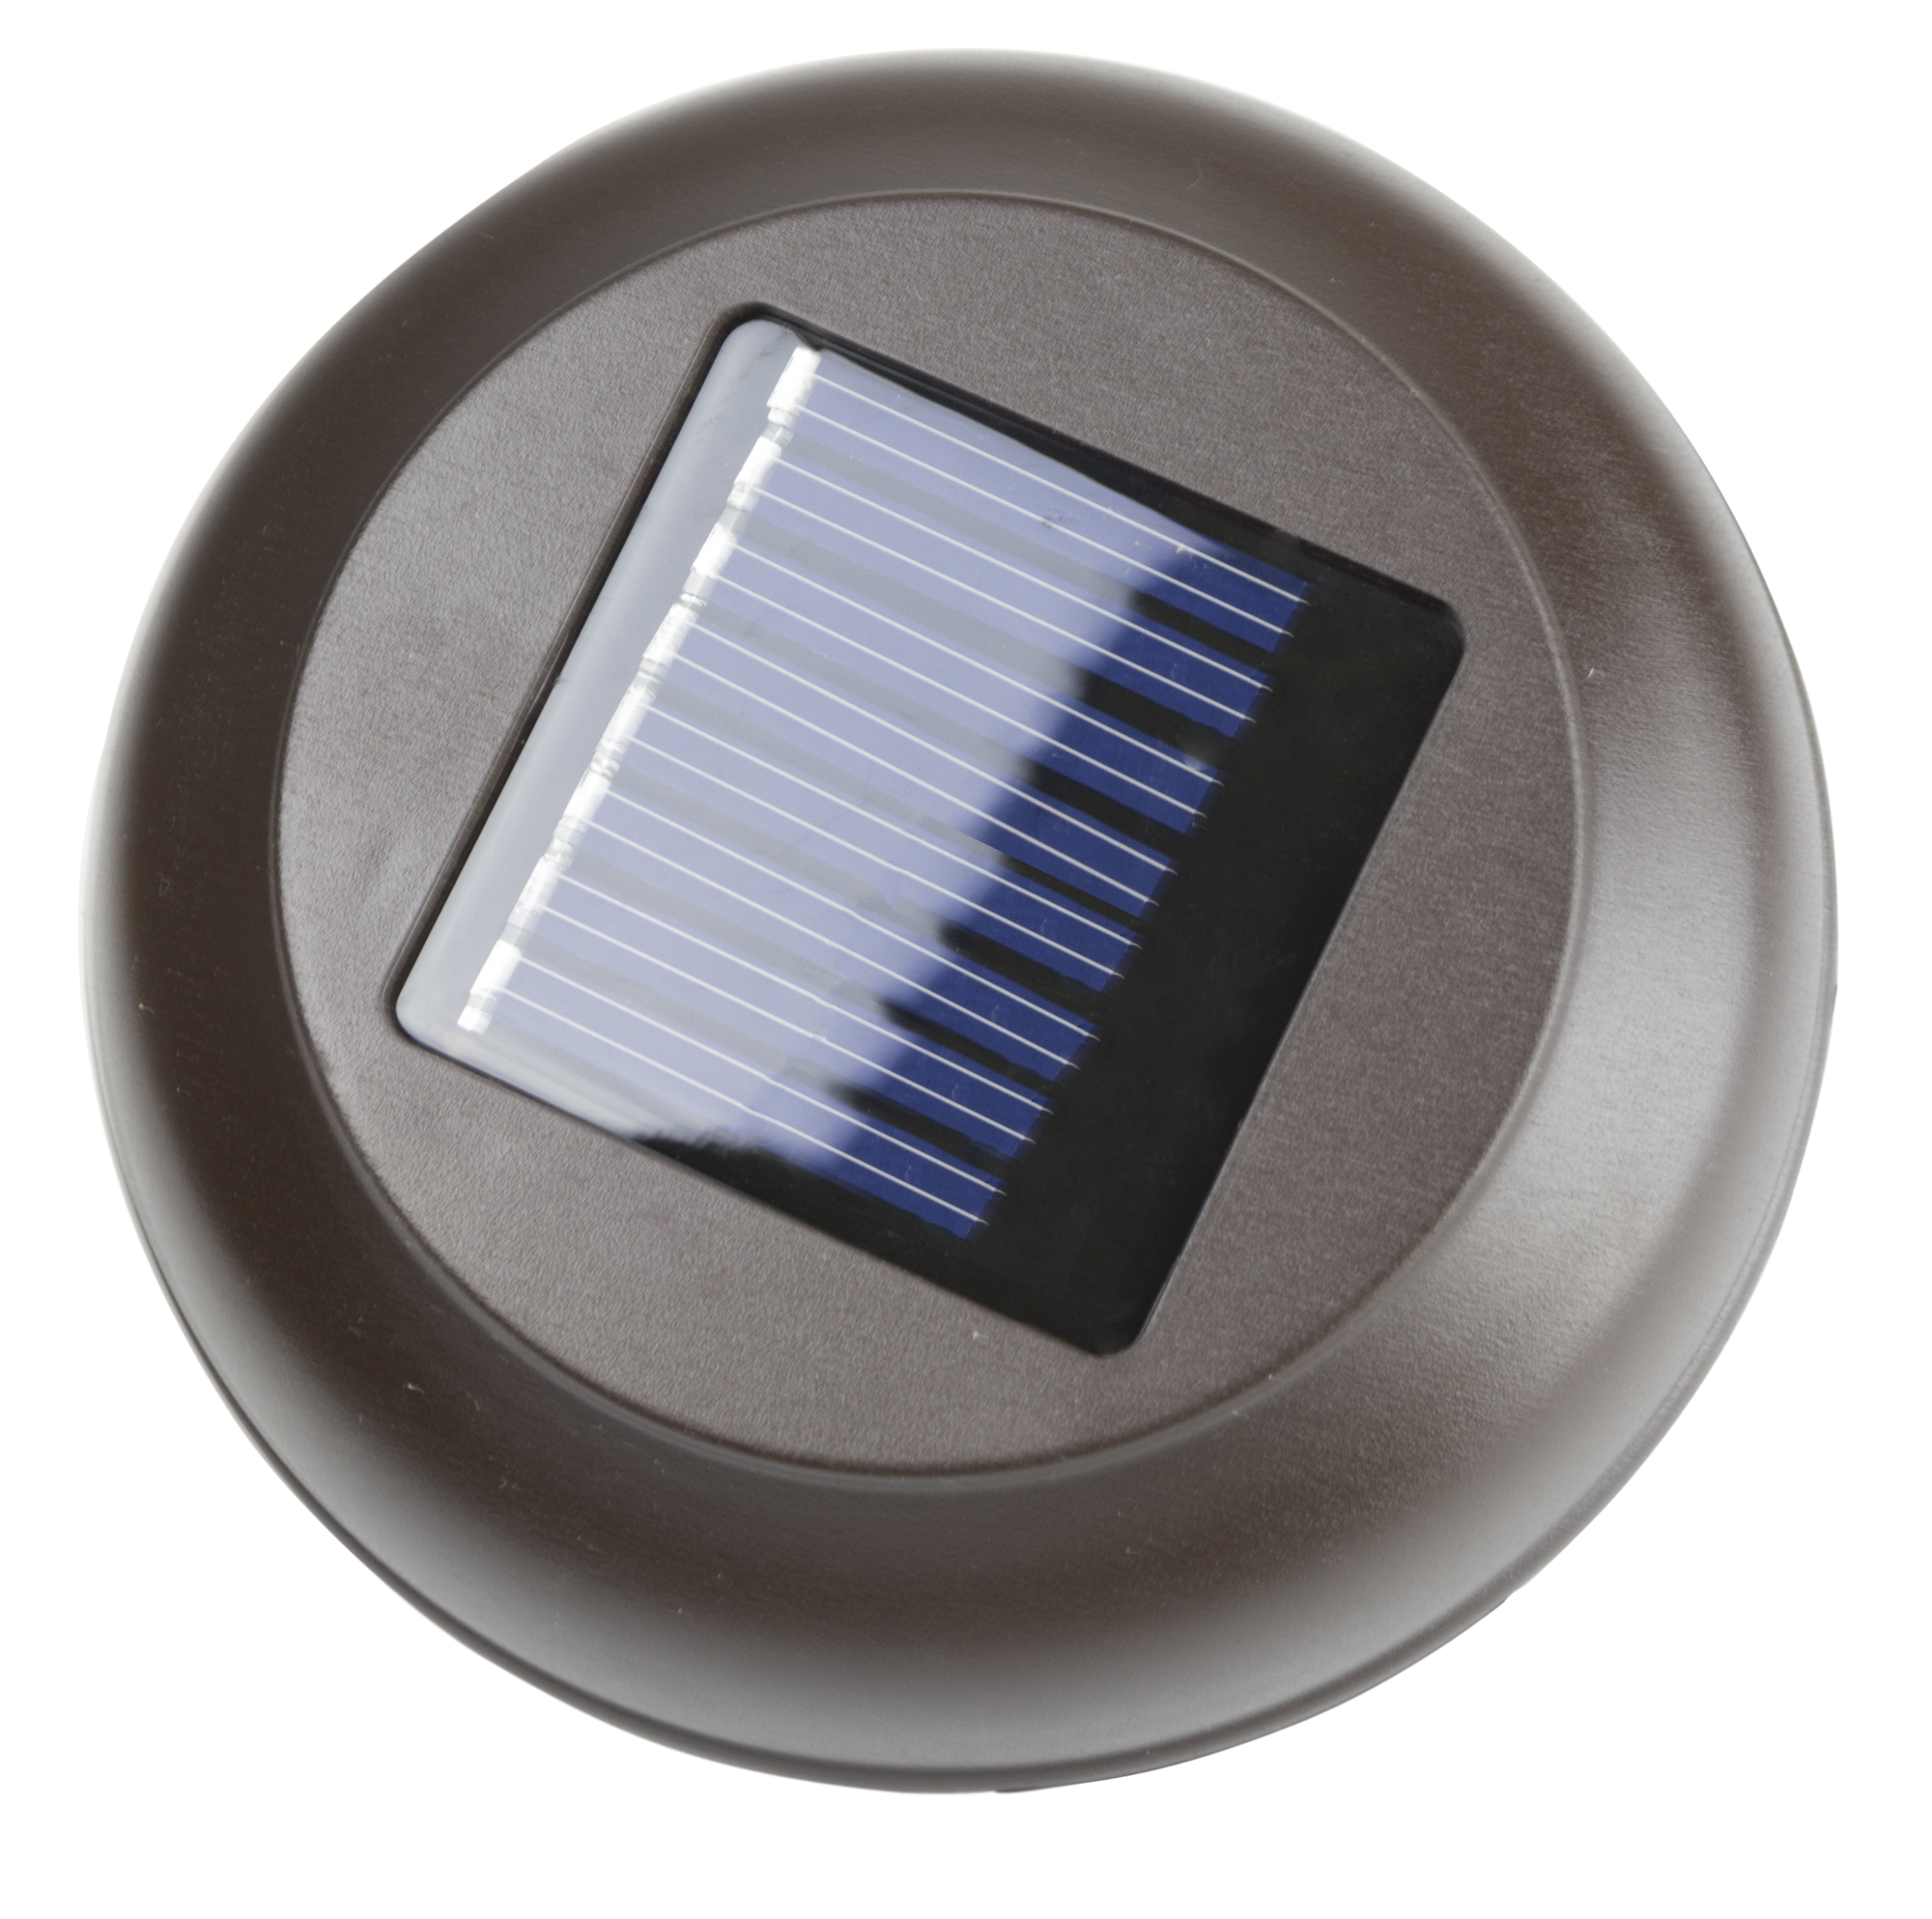 Outdoor Solar Light Replacement Parts Outdoor Lighting Ideas